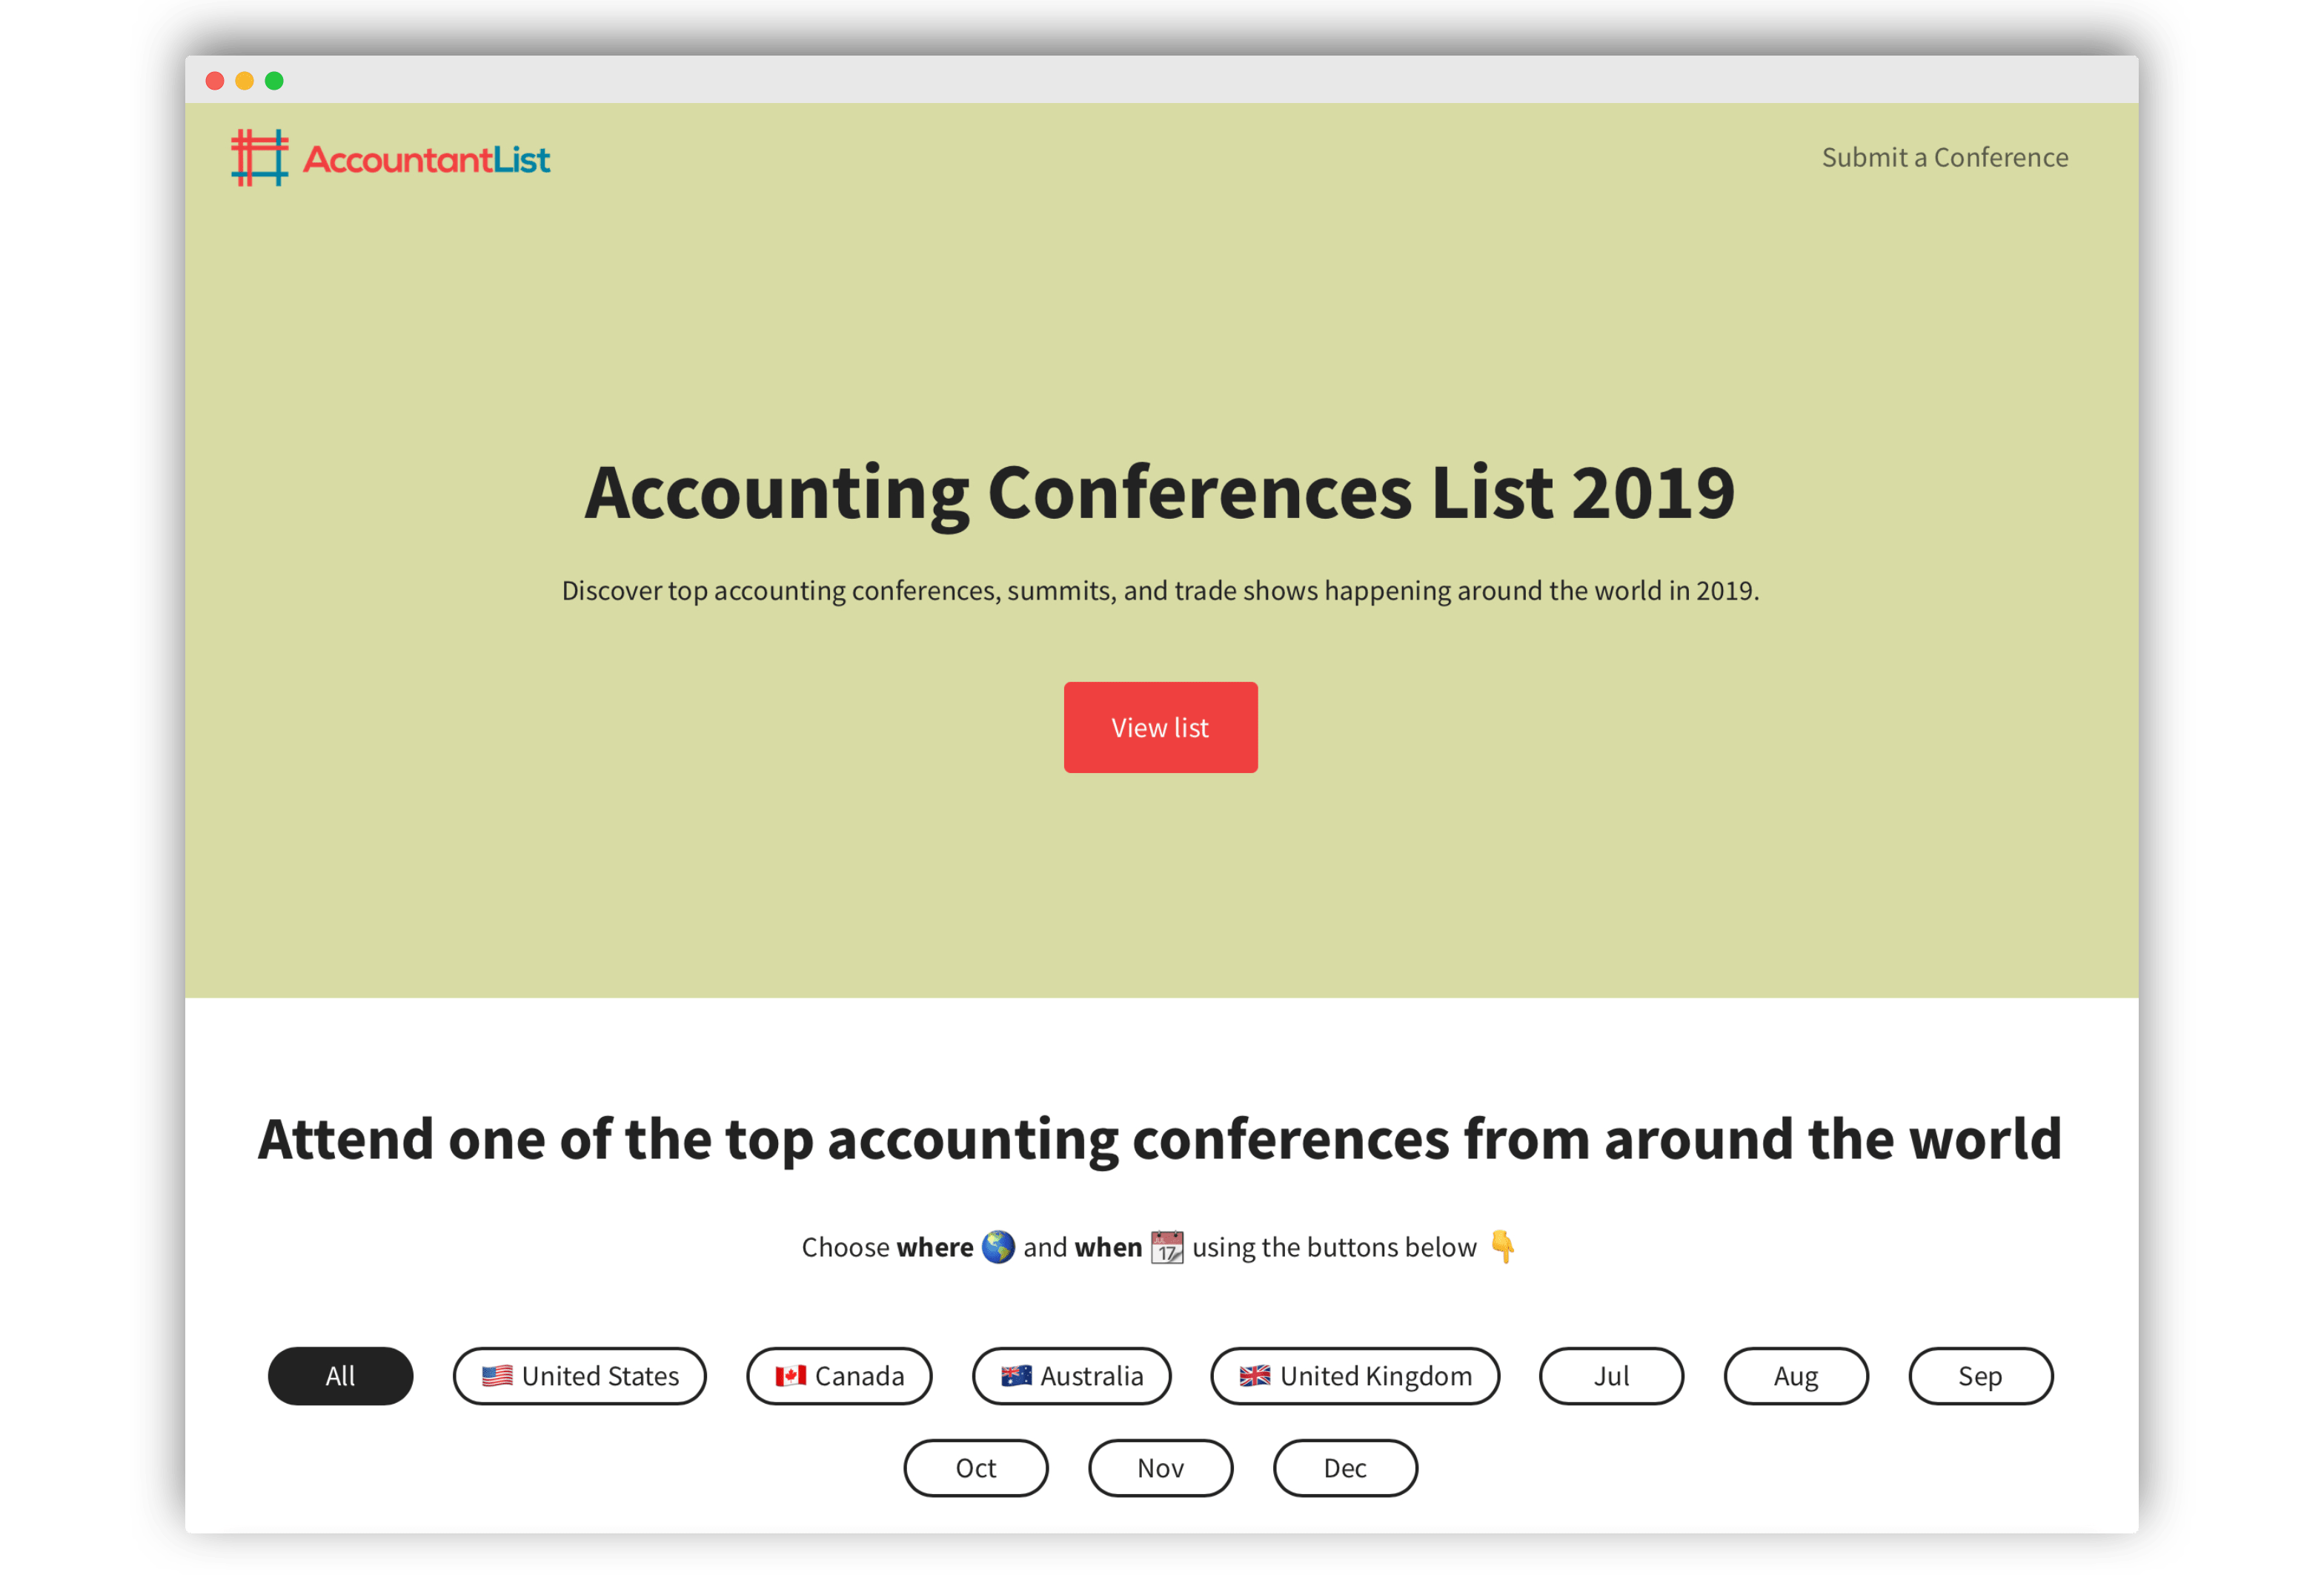 The Ultimate List of Top Accounting Conferences in 2019